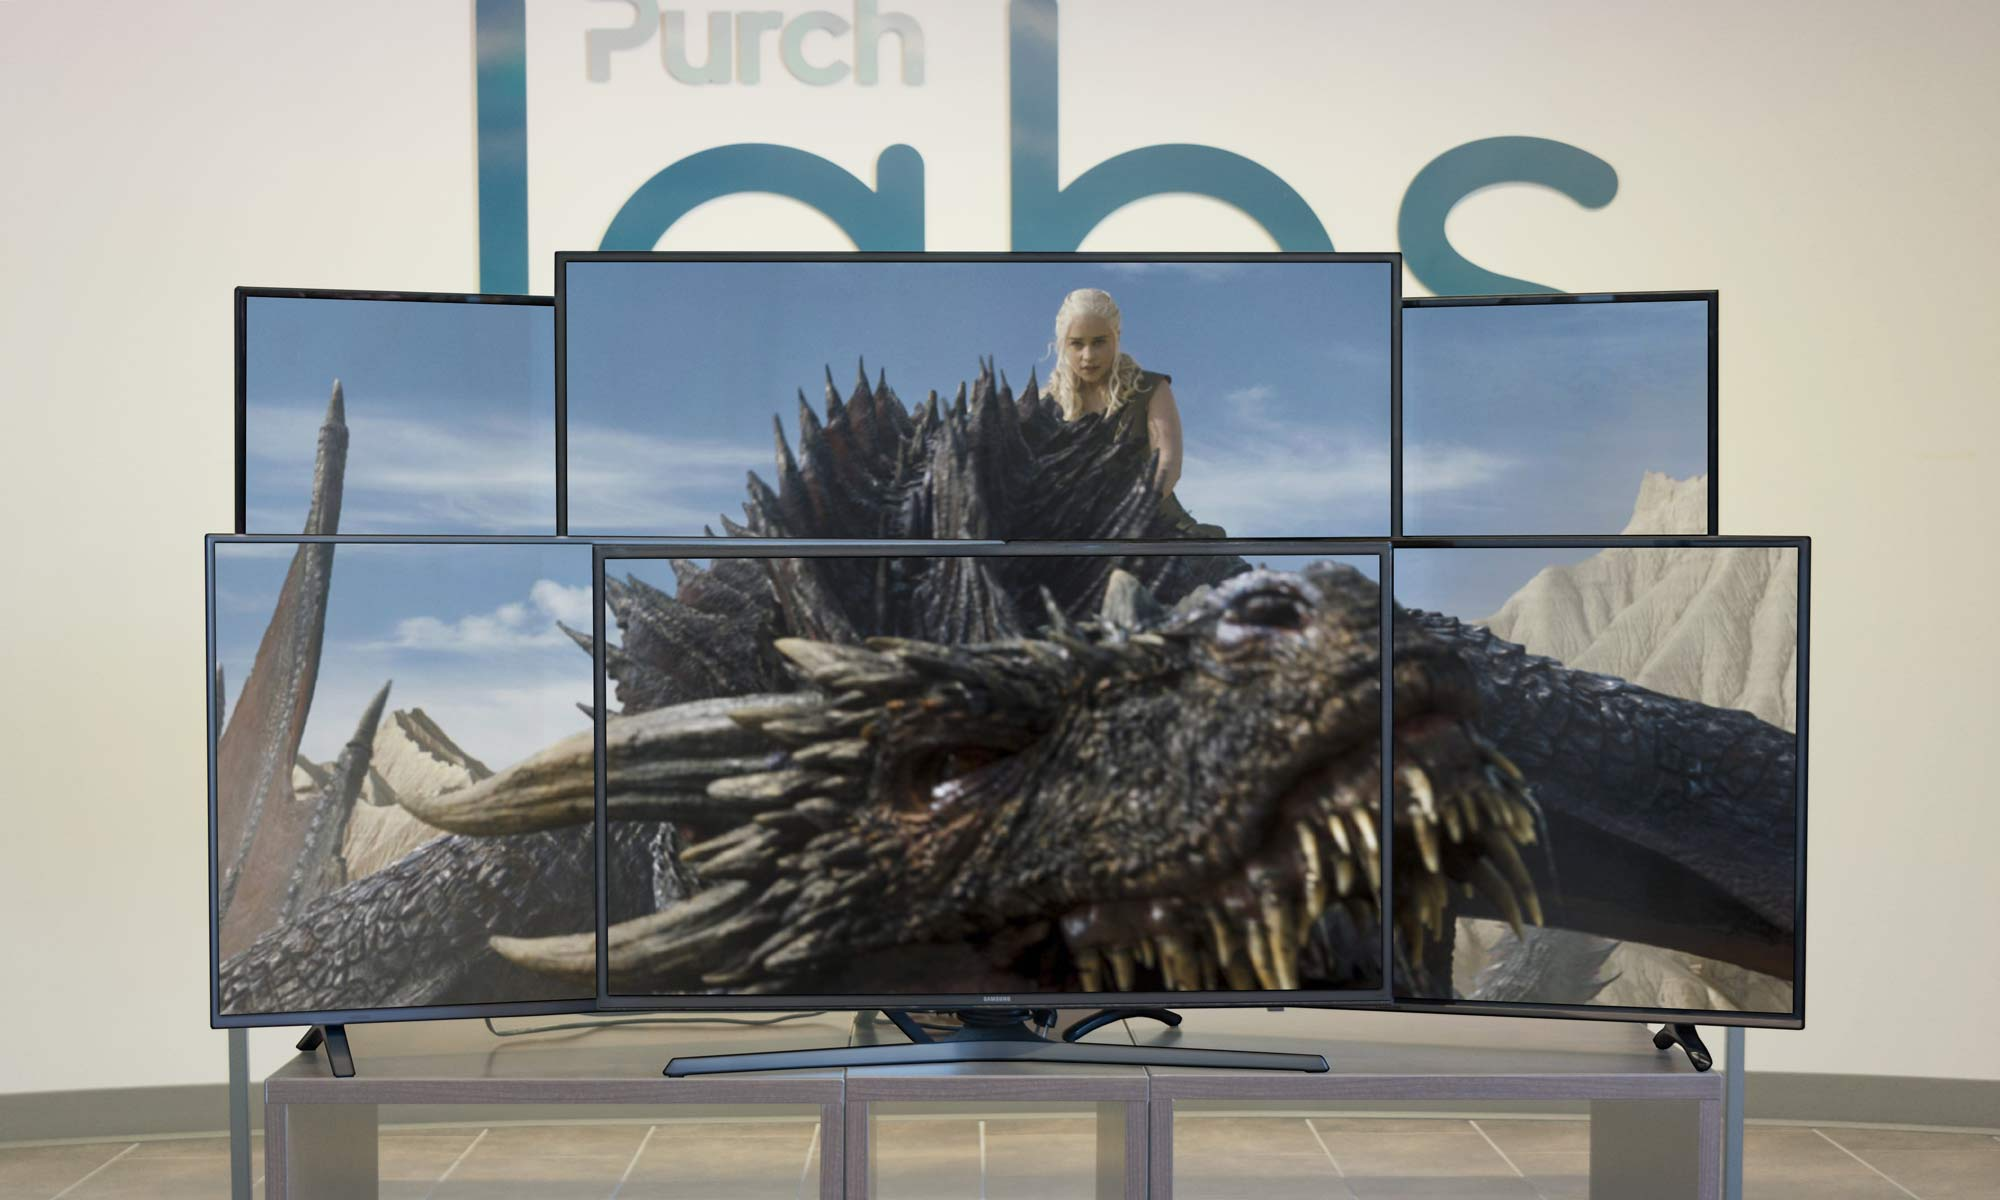 Top Cheap 4K TVs (Under $500), Ranked from Best to Worst